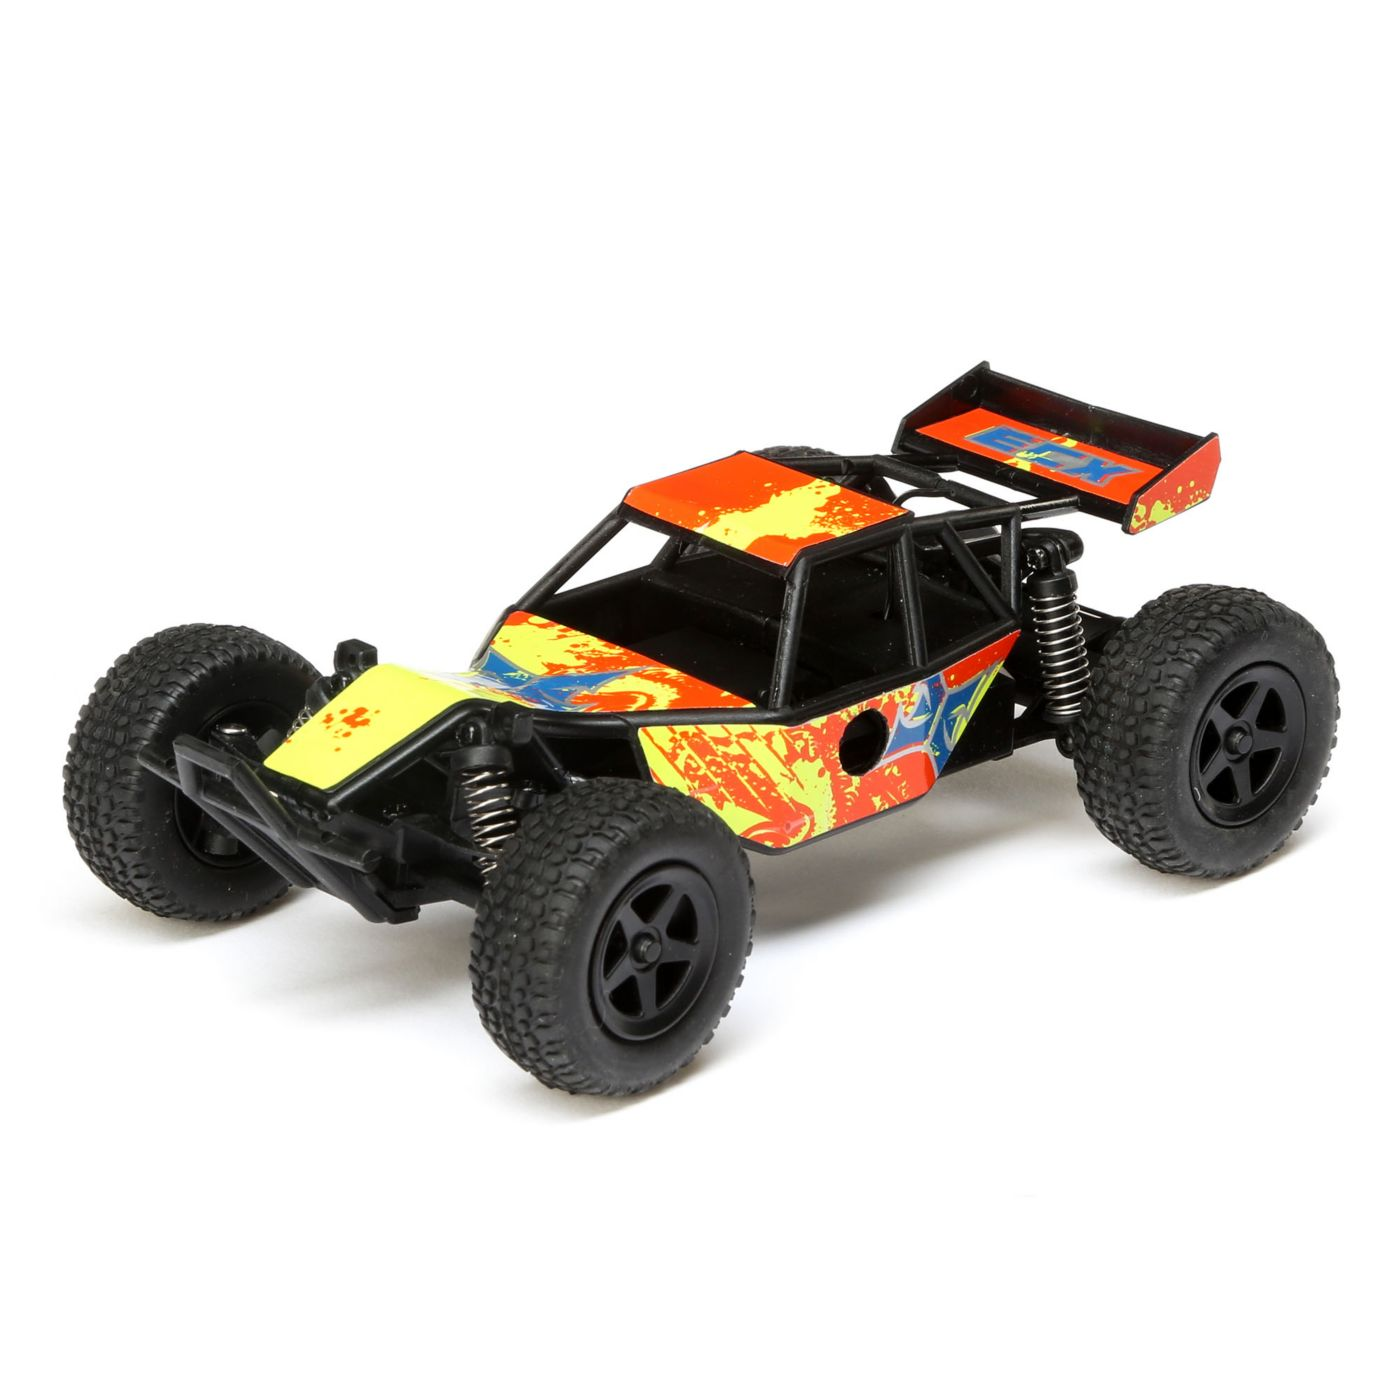 Small-scale Fun on the Go: ECX Micro Roost 1/28-scale Desert Buggy